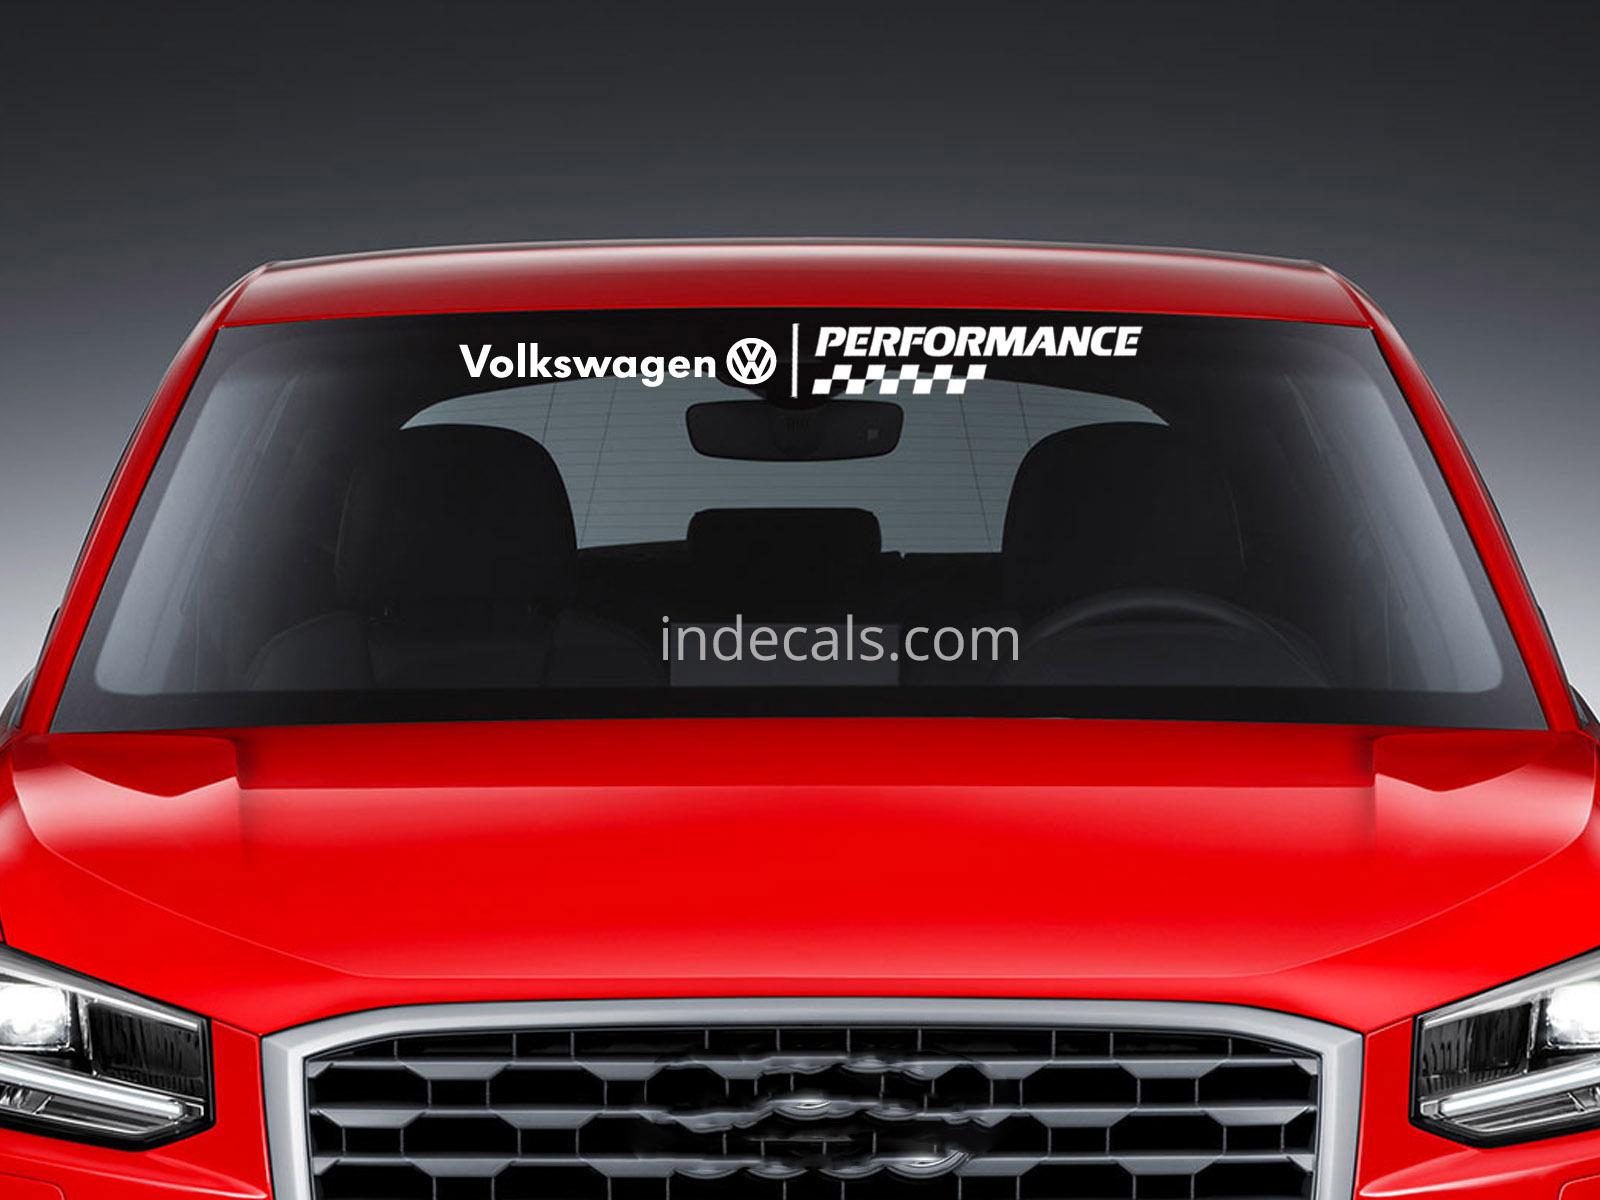 1 X Volkswagen Performance Sticker For Windshield Or Back